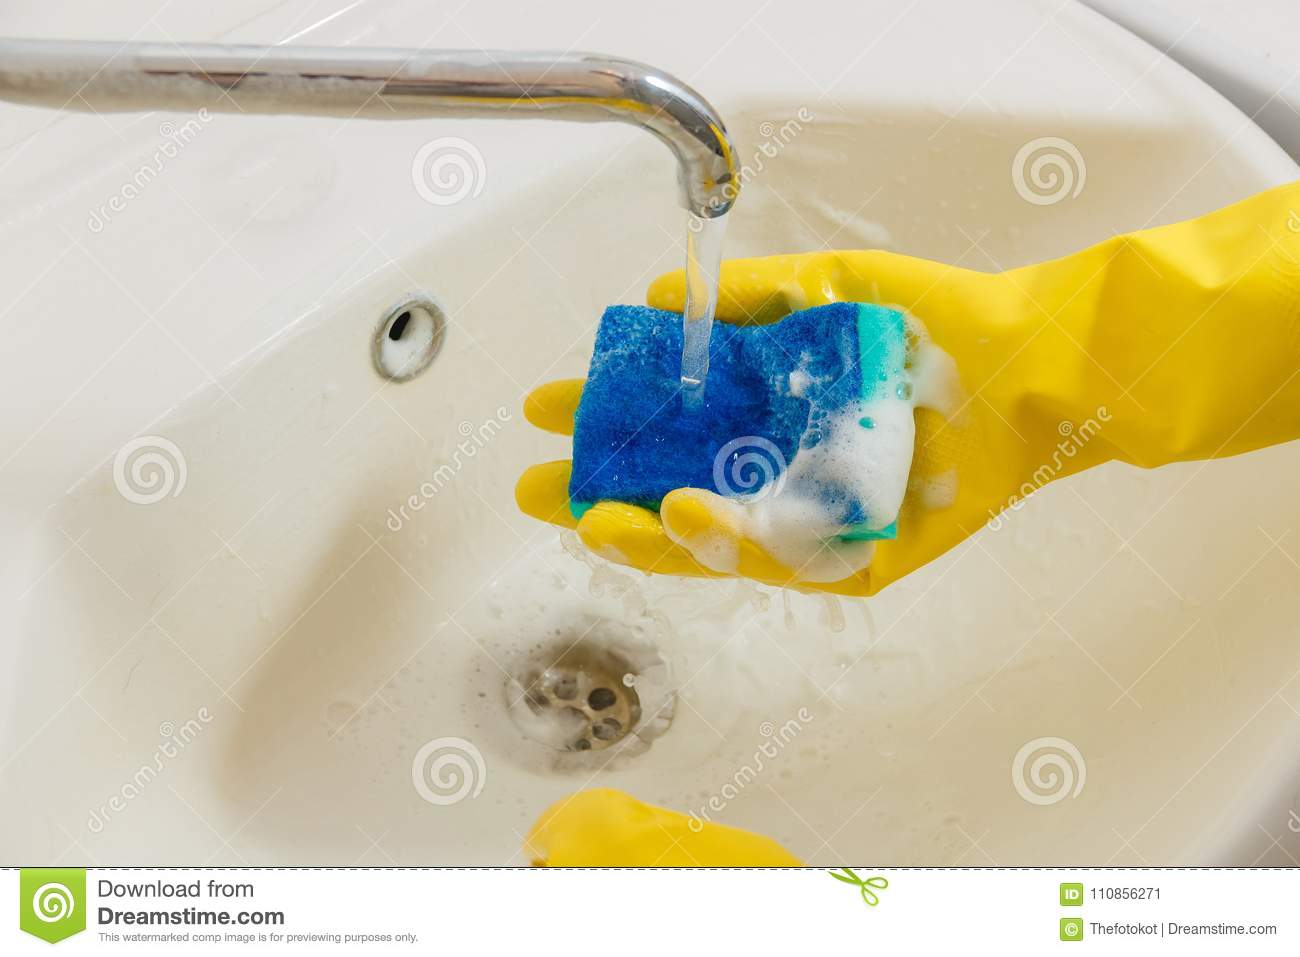 Cleaning Bathroom Faucet With Detergent In Yellow Rubber Gloves With ...